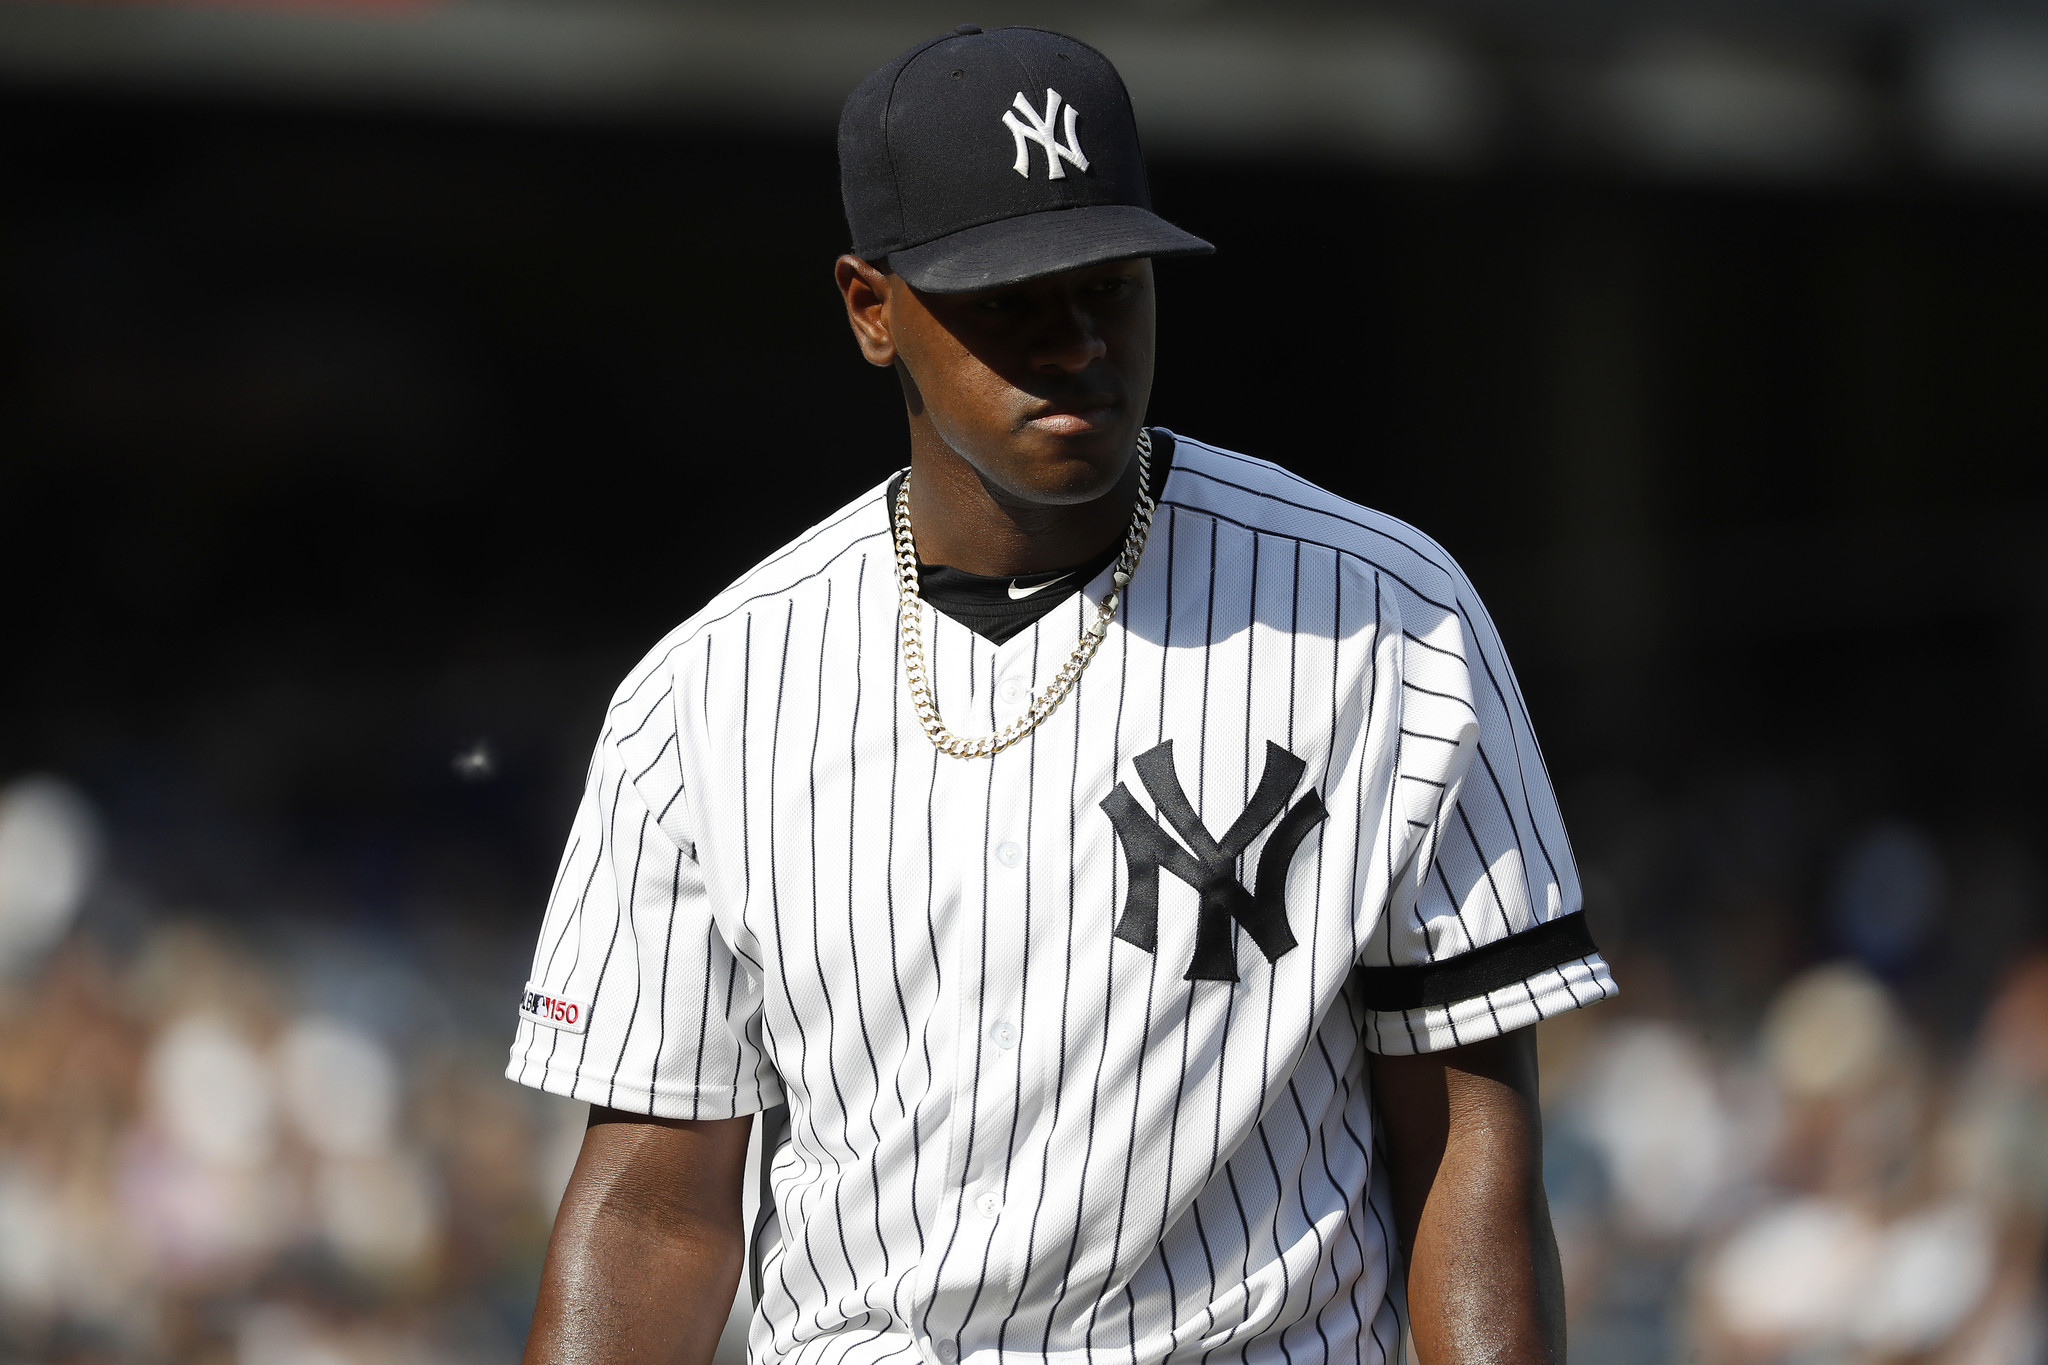 Yankees get gut punch with news Luis Severino needs Tommy John surgery